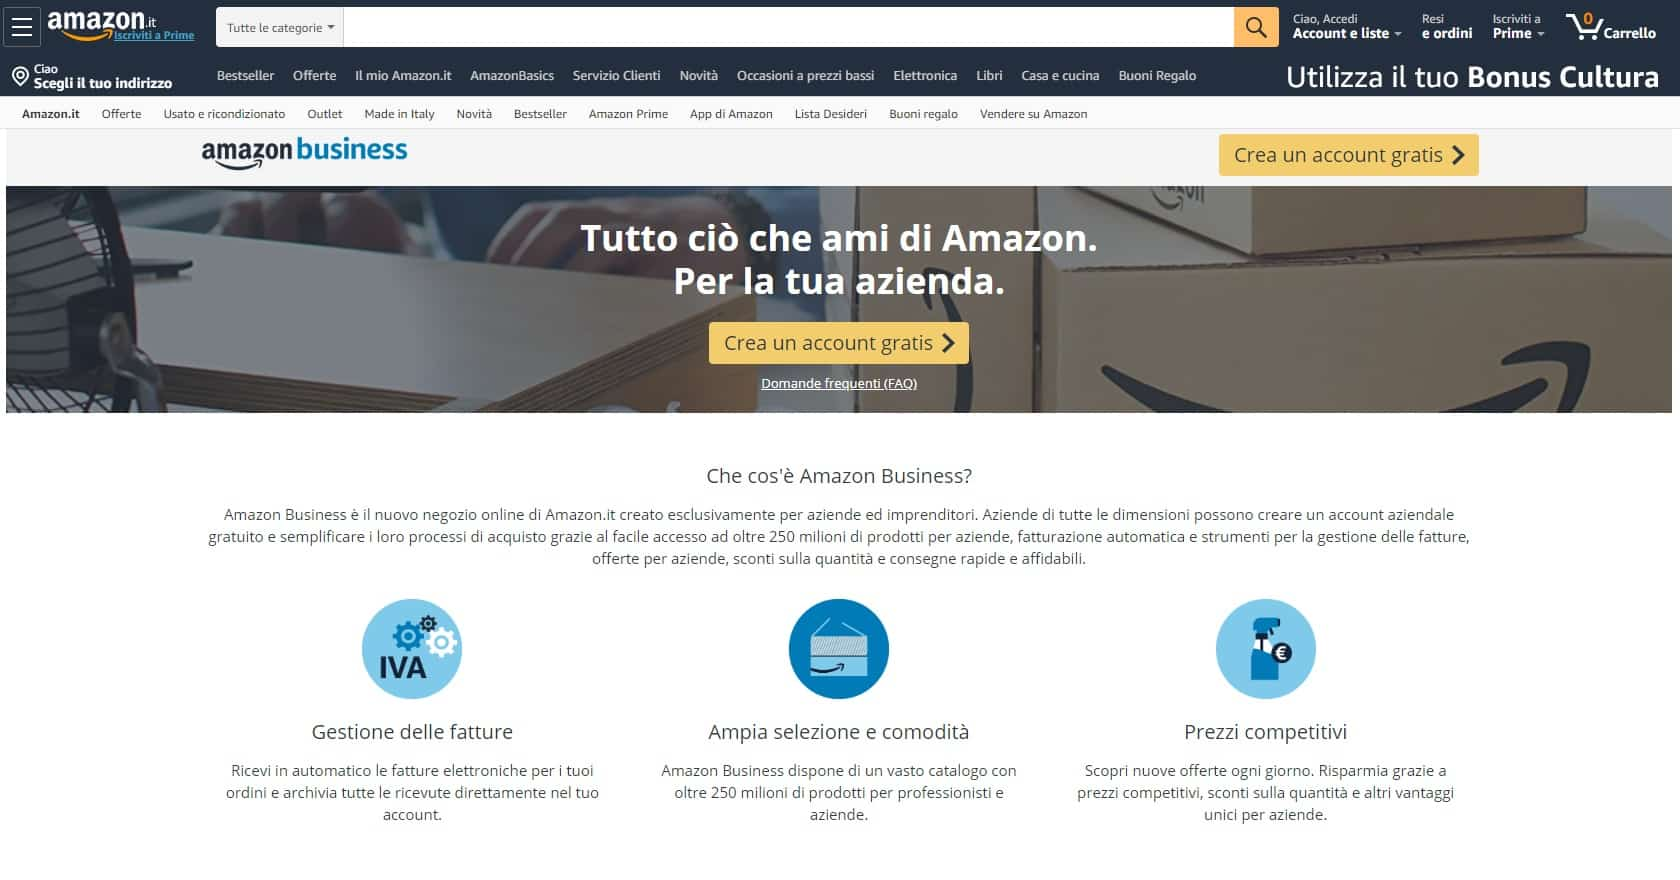 Come registrarsi e creare un account su Amazon Business